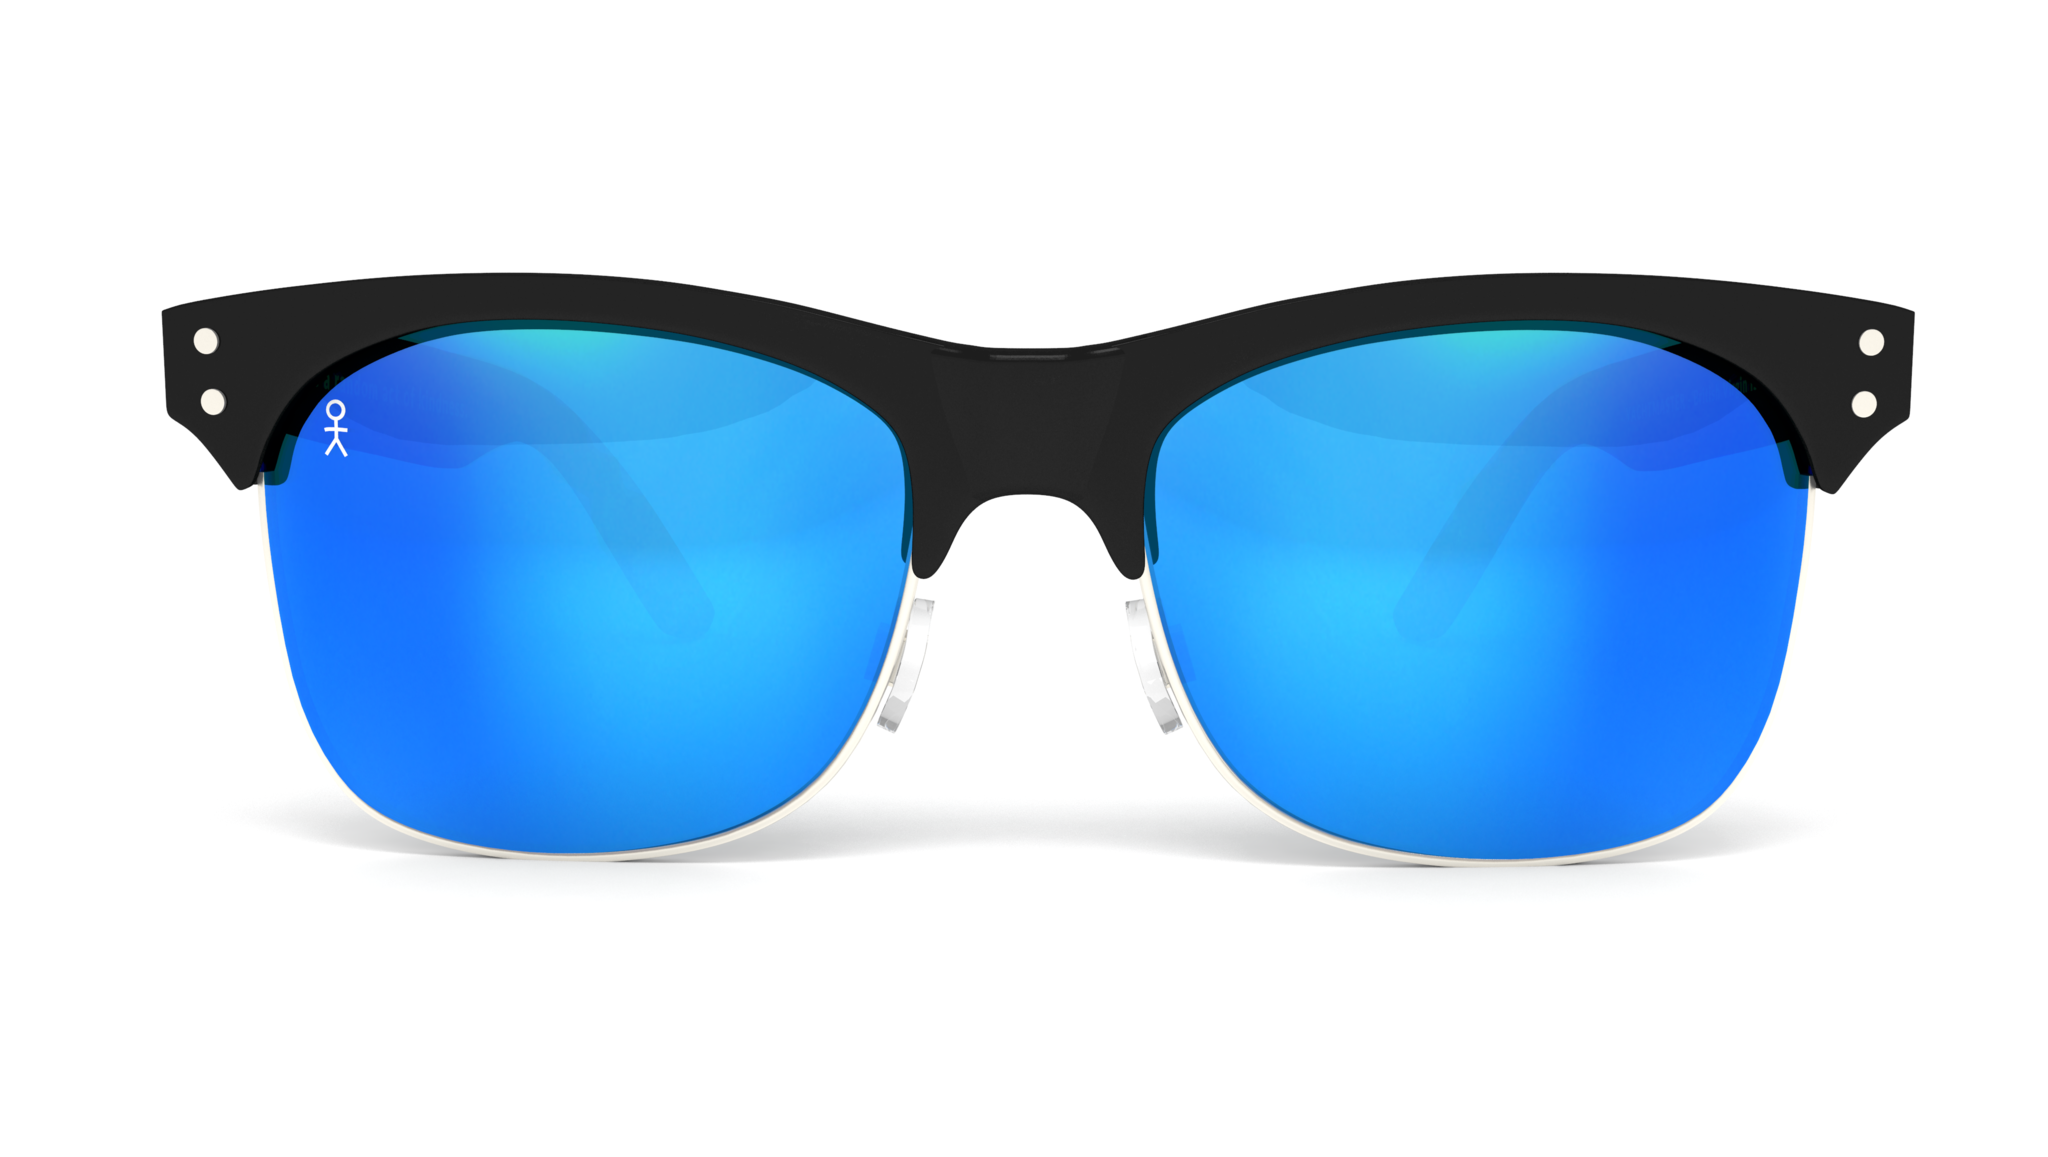 . PlusPng.com Yachtmaster - BVI - Matte Black With Blue Mirrored Lens - Dicks Cottons  Sunglasses - 1 PlusPng.com  - Sunglasses PNG